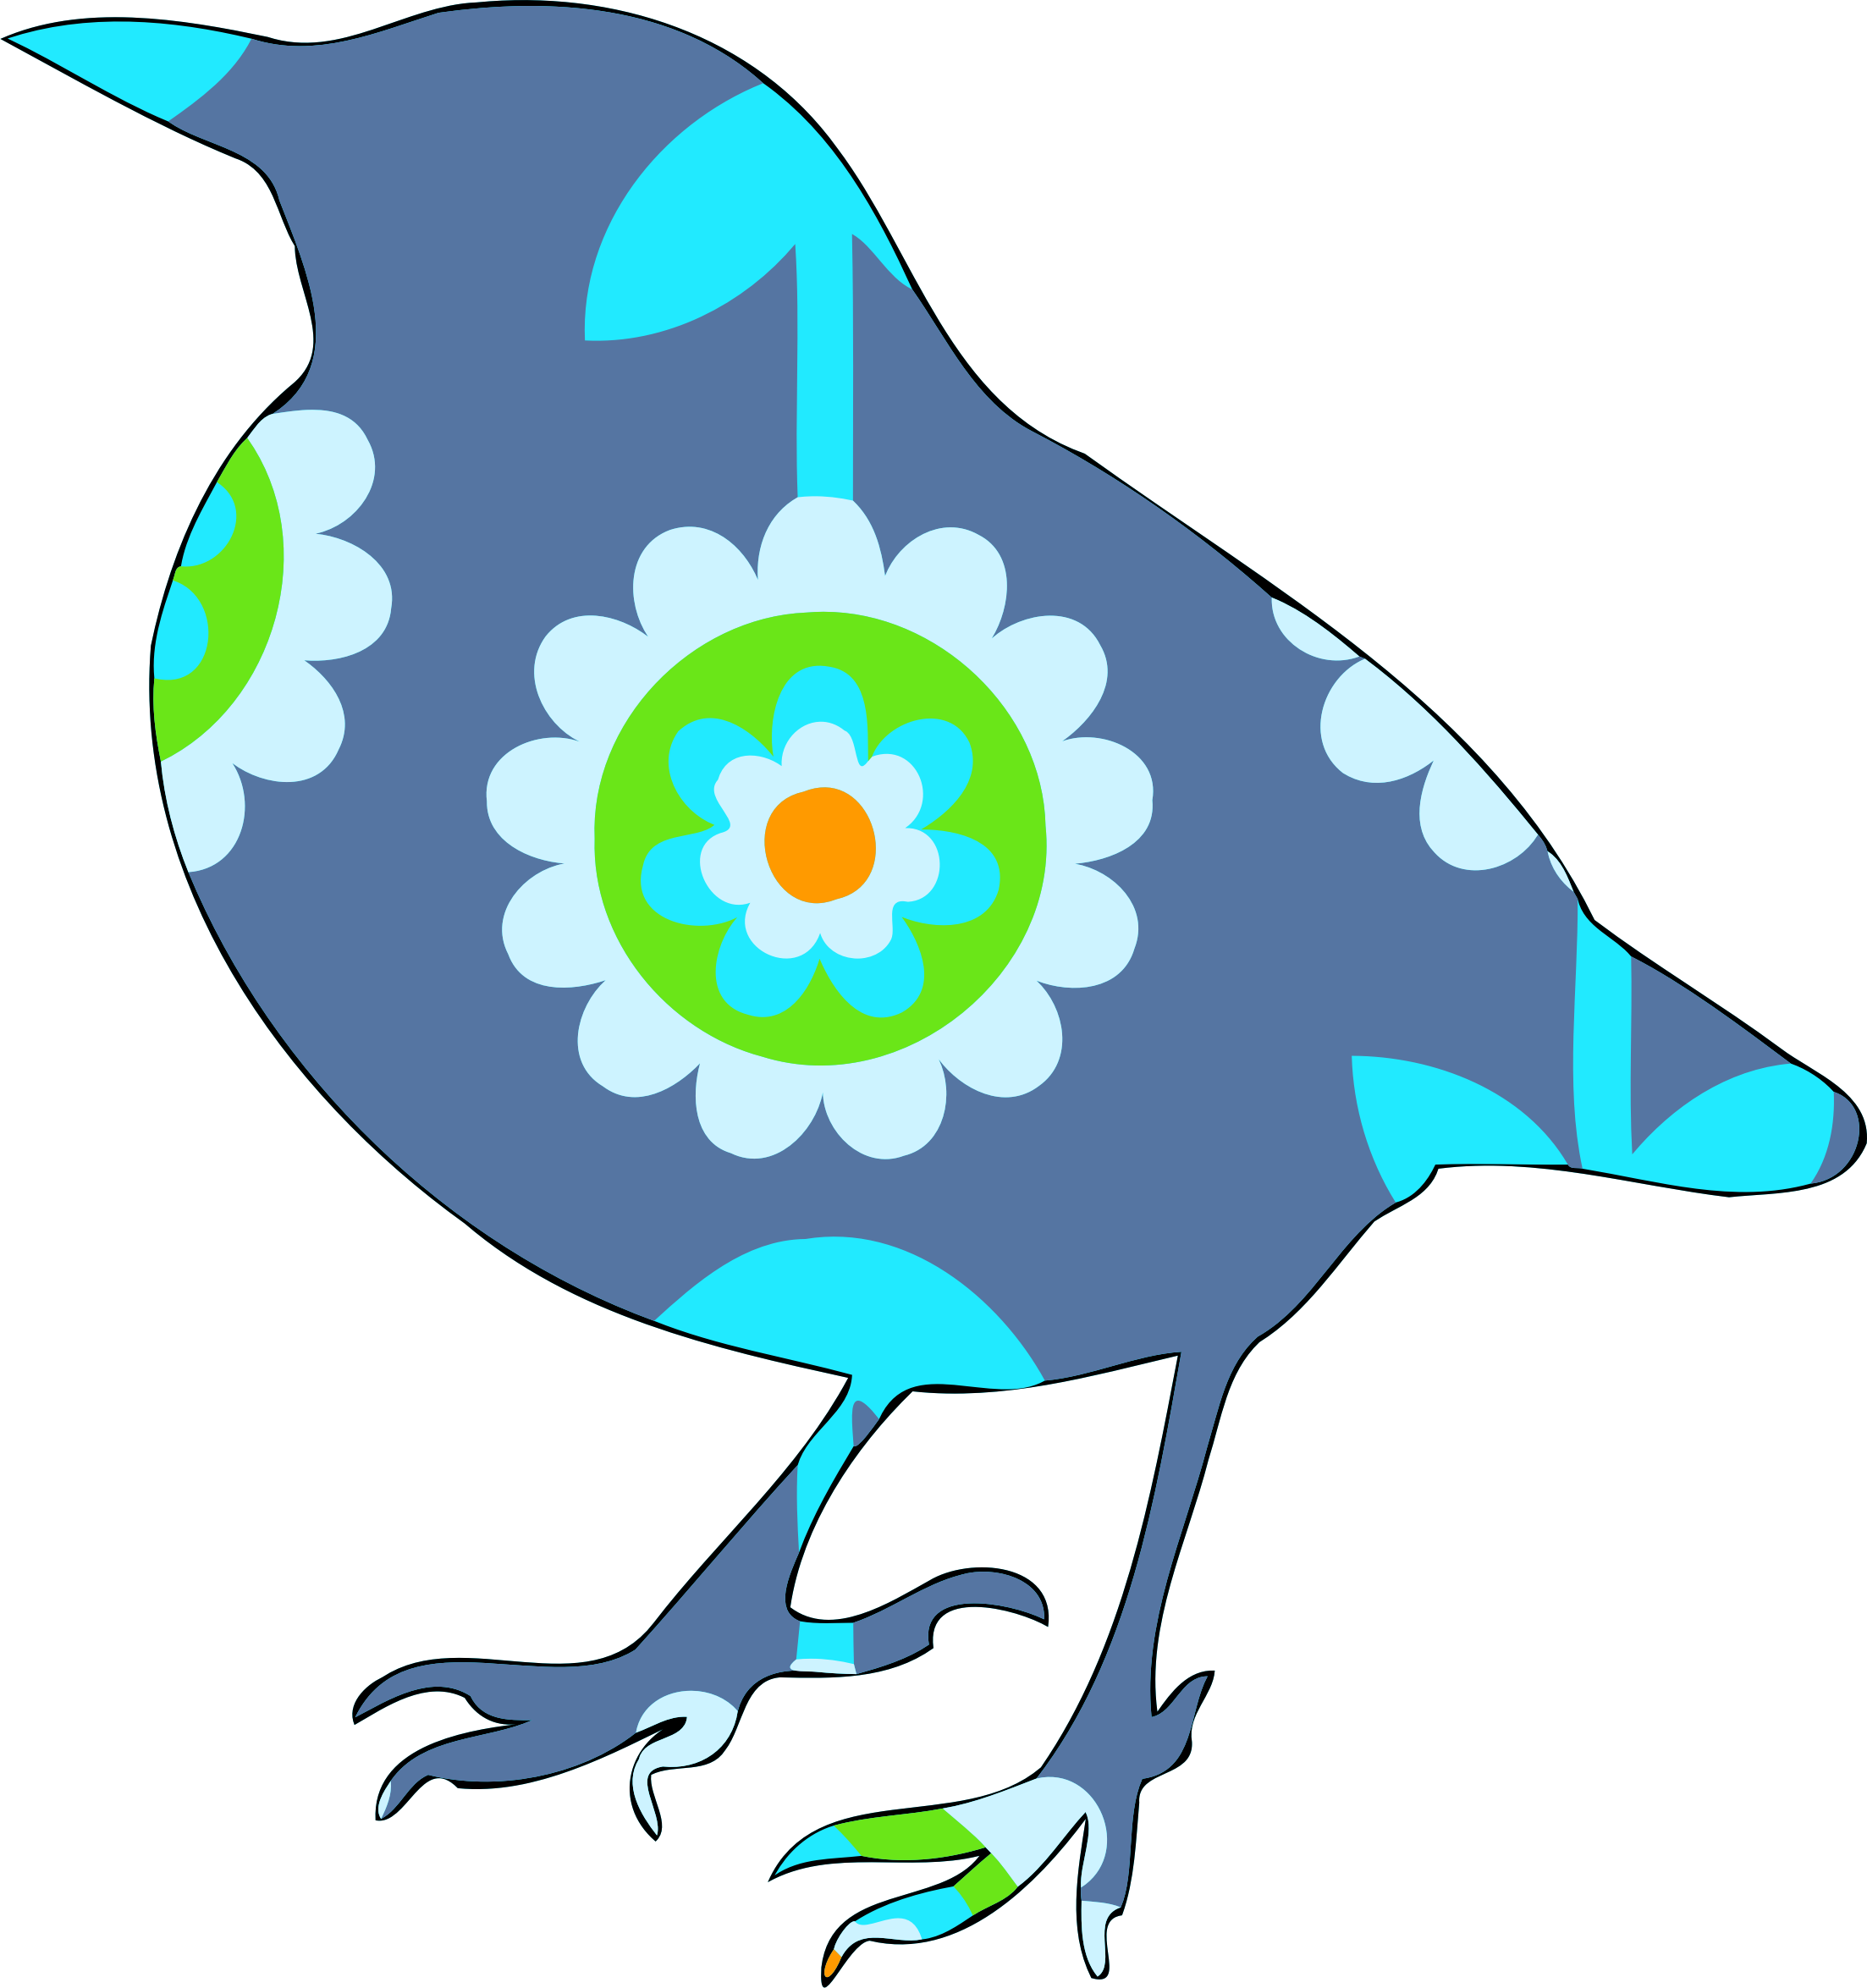 Floral bird 1 by Firkin